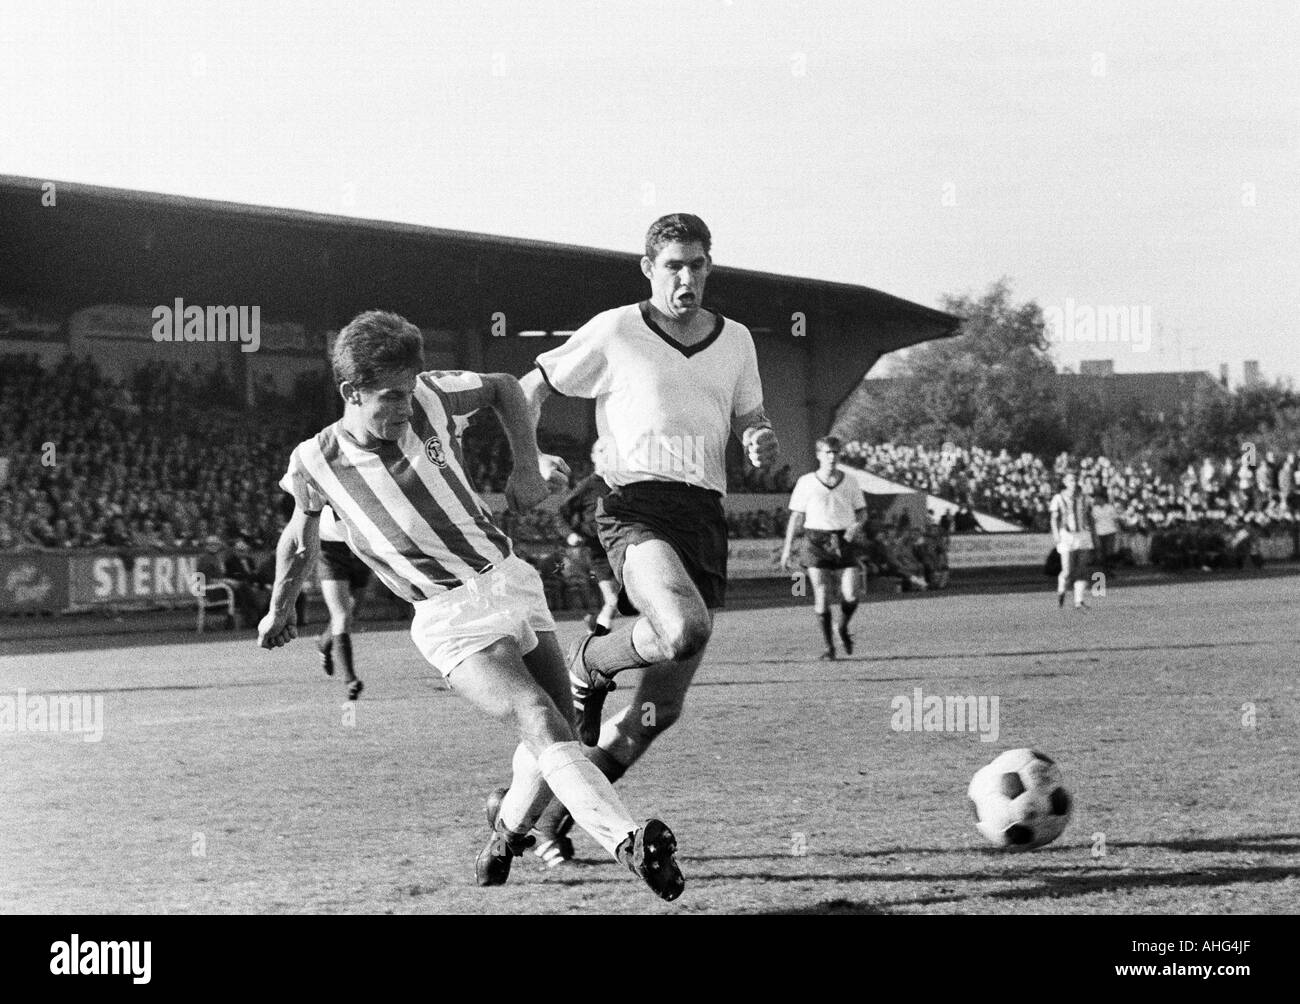 football, Regionalliga West, 1967/1968, ETB Schwarz-Weiss Essen versus Arminia Bielefeld 0:4, Stadium am Uhlenkrug in Essen, scene of the match, duel between Heinz Dieter Loemm (Bielefeld, left) and Hans Huelsmann (ETB), behind Guenter Leufgen (ETB) - Stock Image